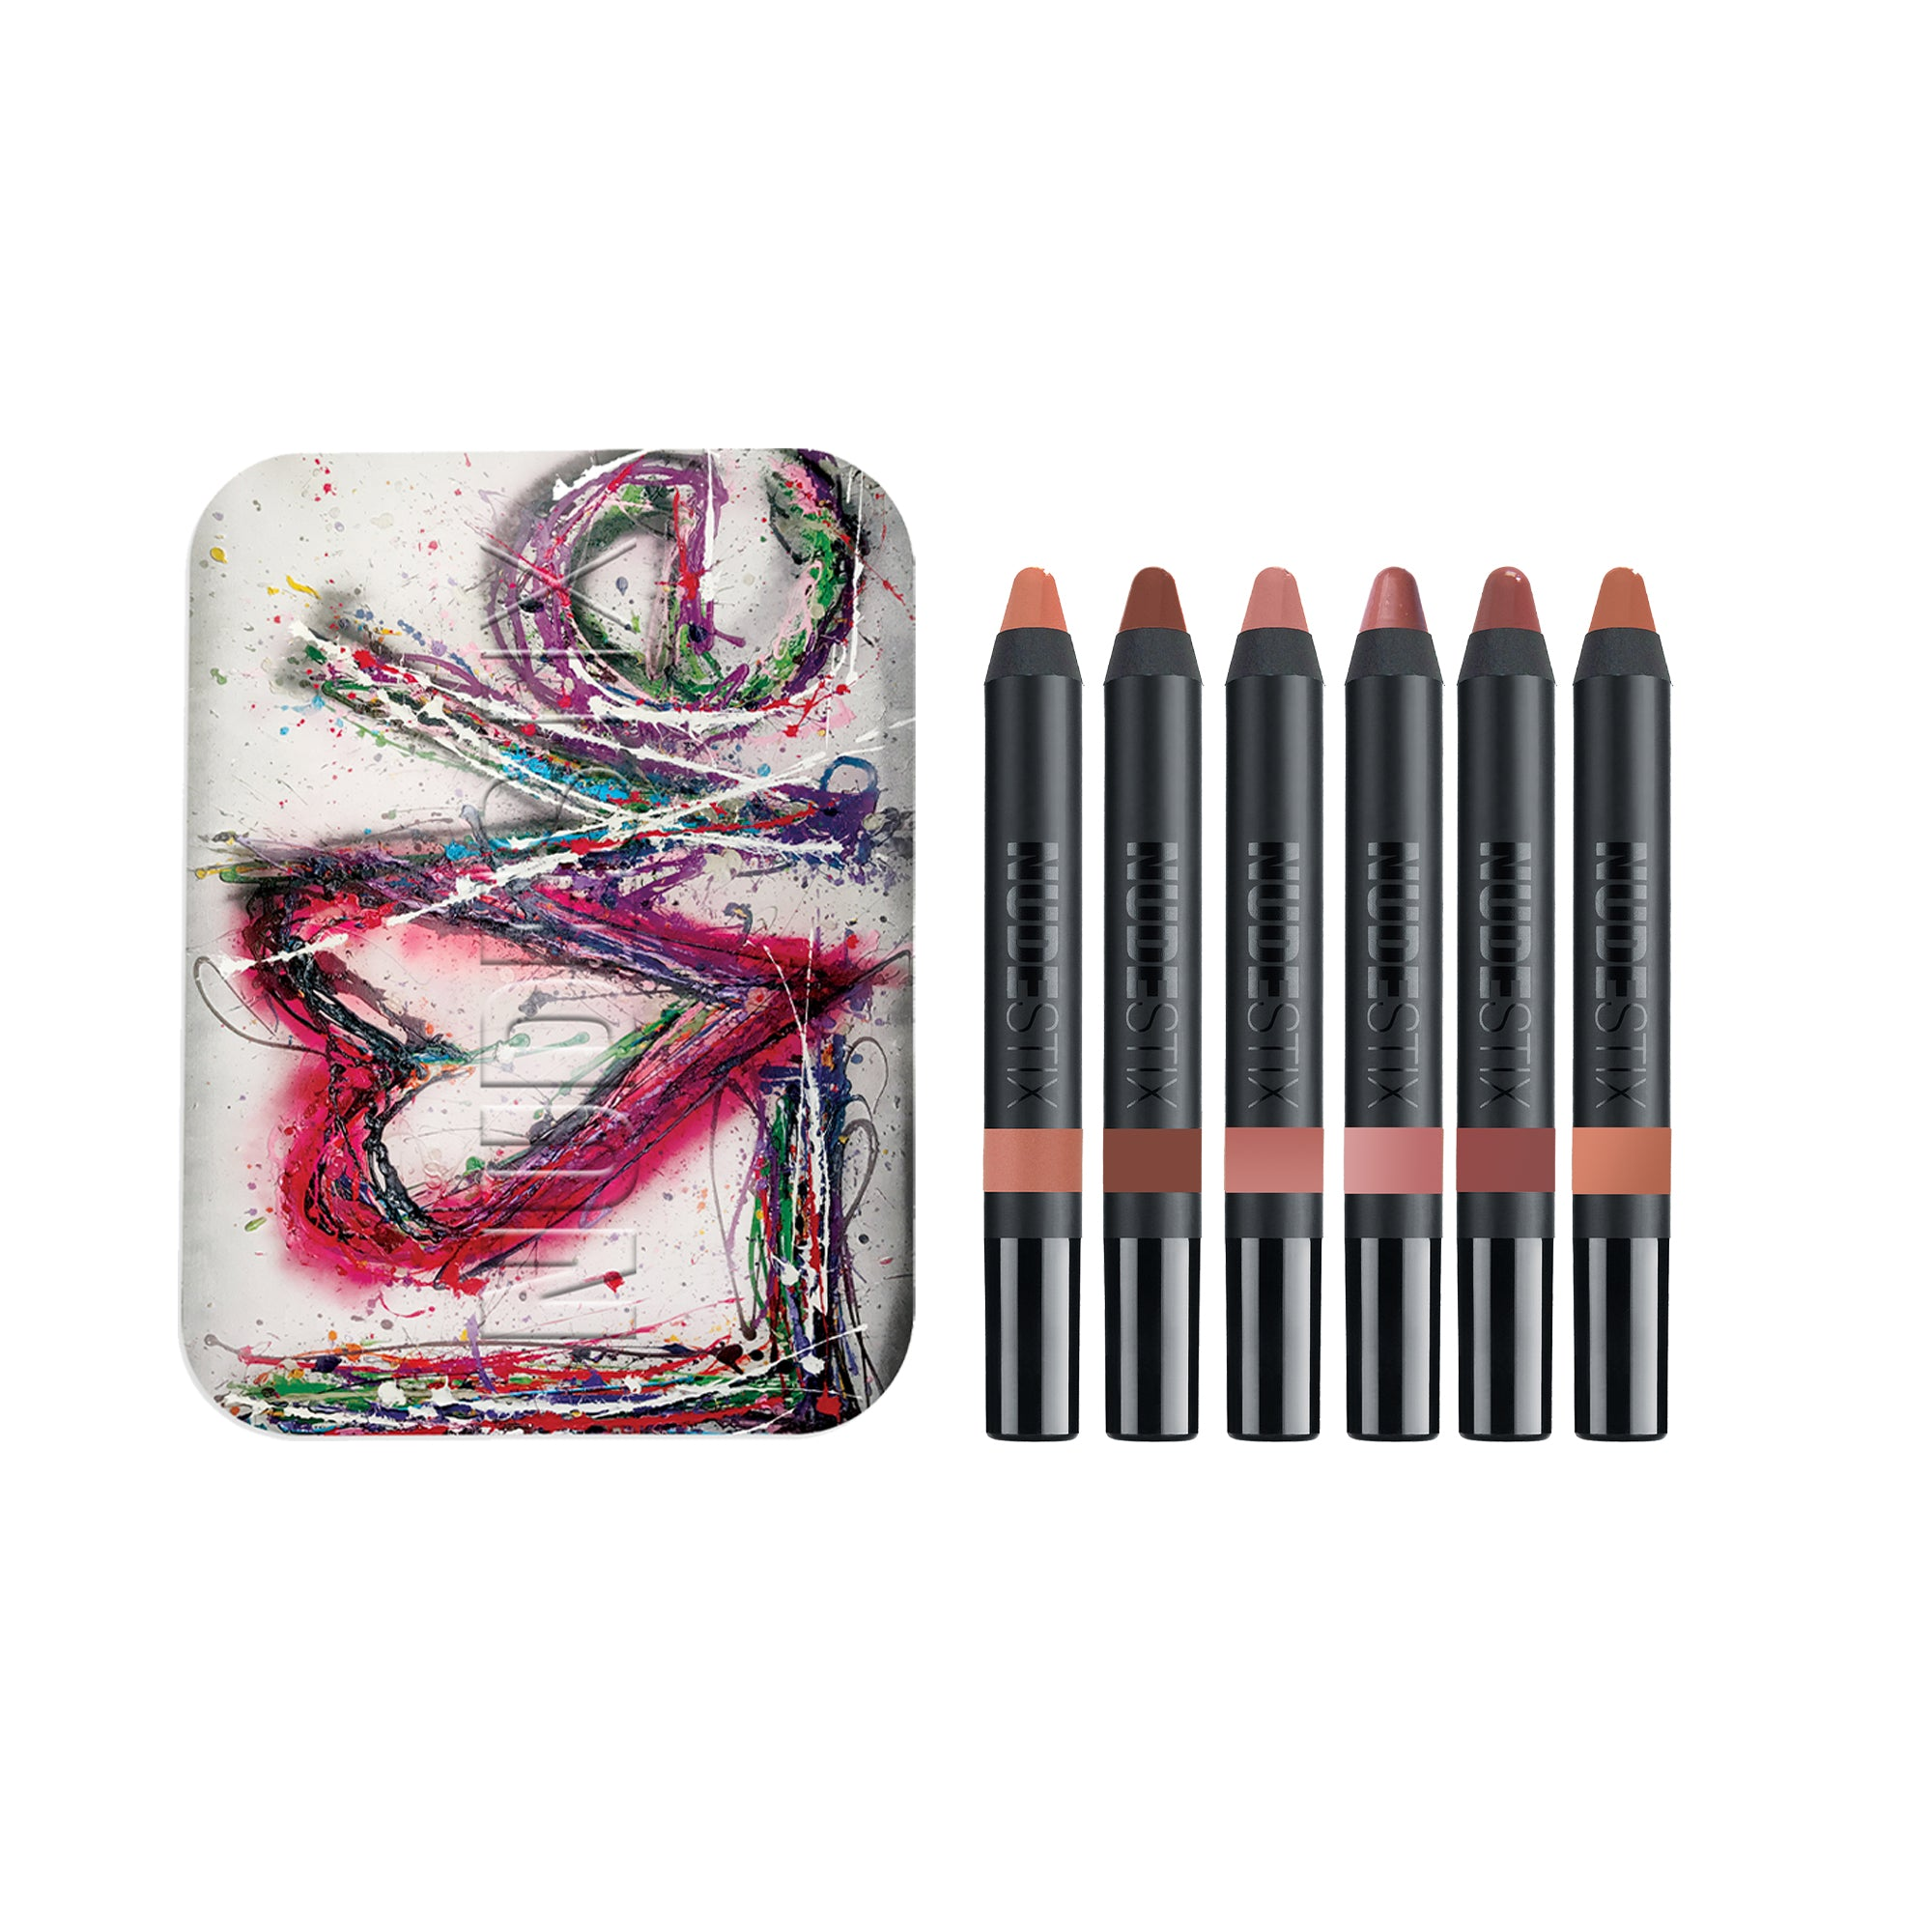 nude lip balm kit and case